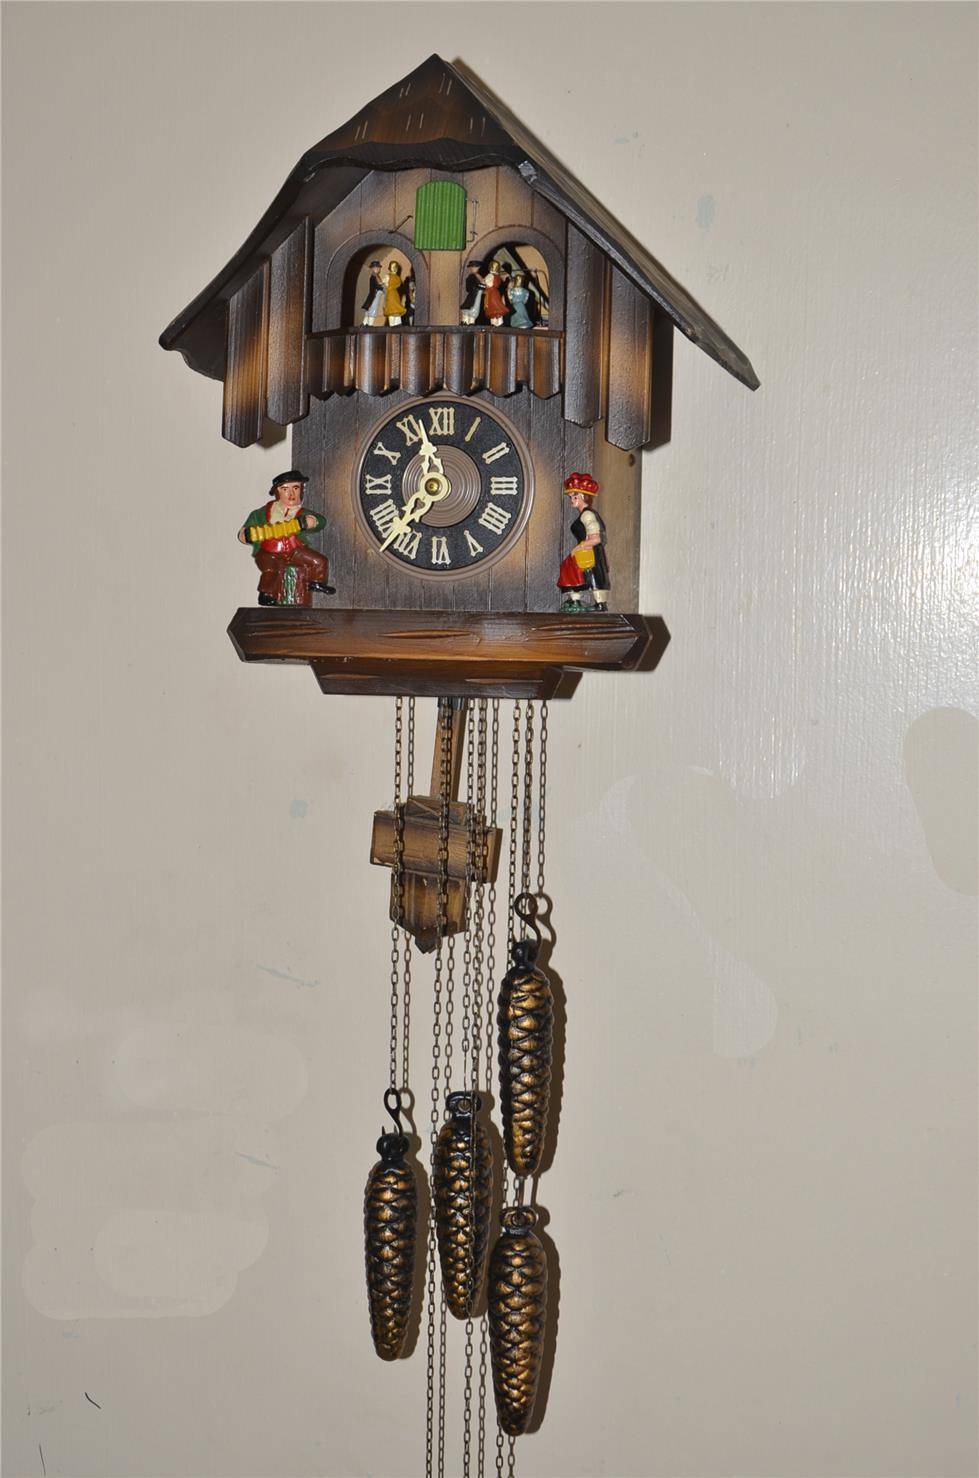 Antique vintage mechanical pendulum cuckoo wall cl end 2 28 2016 2 15 00 pm - Cuckoo pendulum wall clock ...